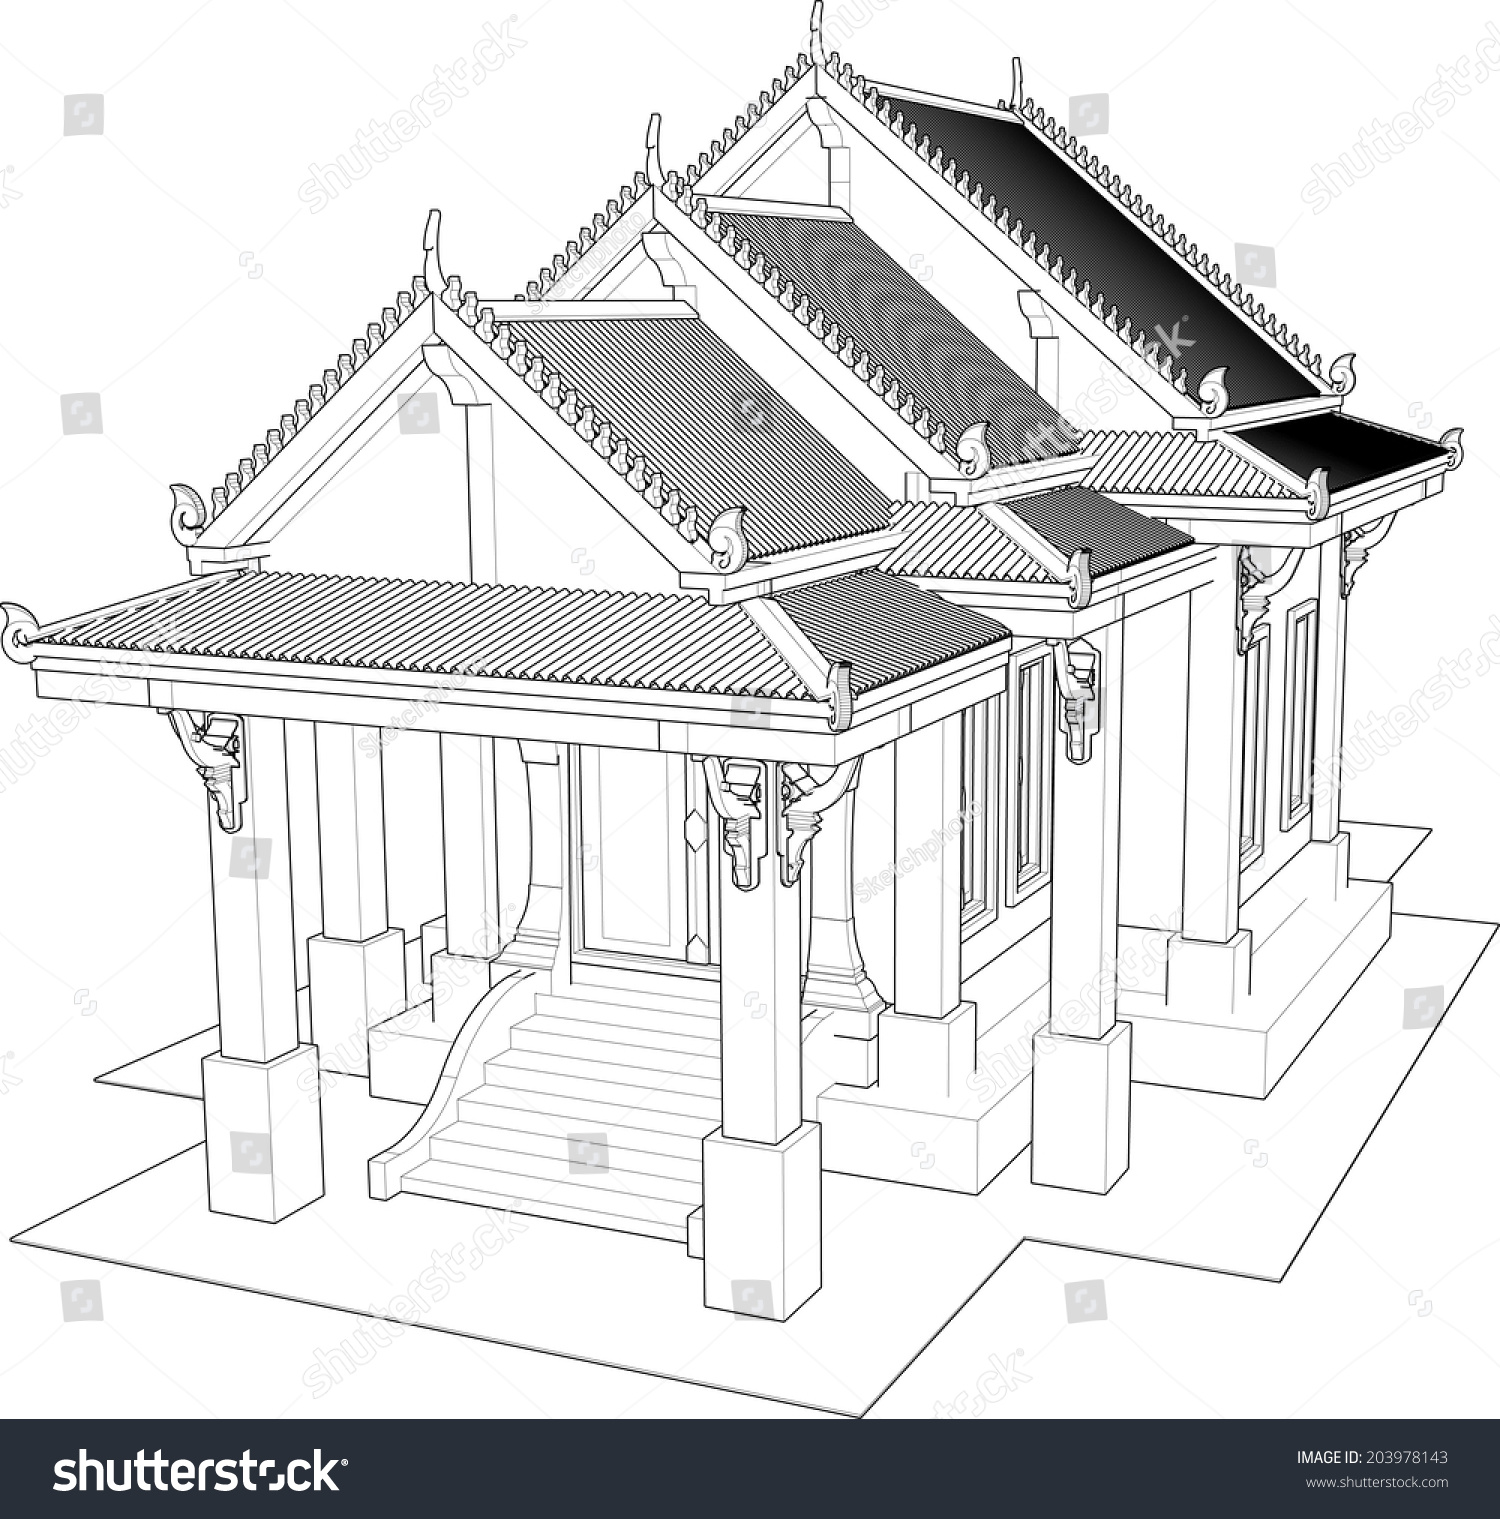 Architectural Design Small Temple Thailand Stock Vector 203978143 ...